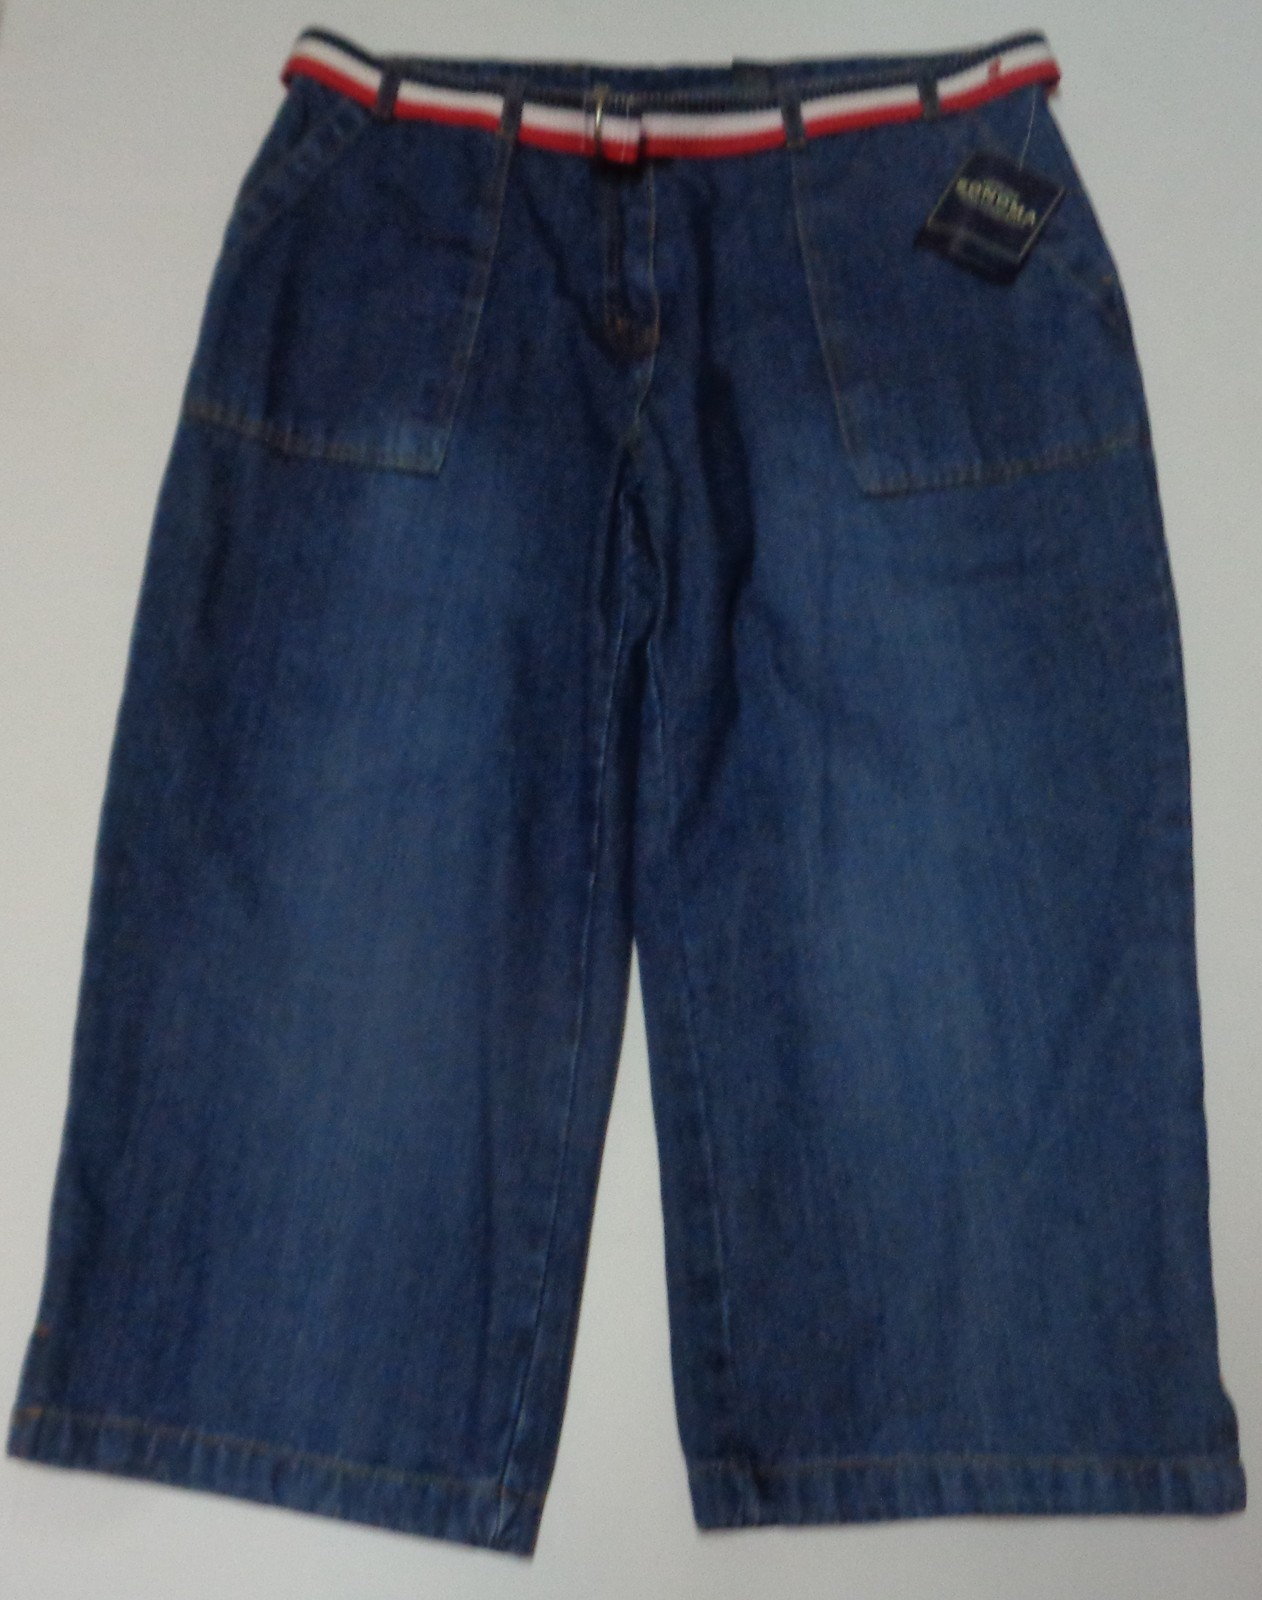 Sonoma Blue Jean Capris NWT SZ 16 Red White & Blue Belt